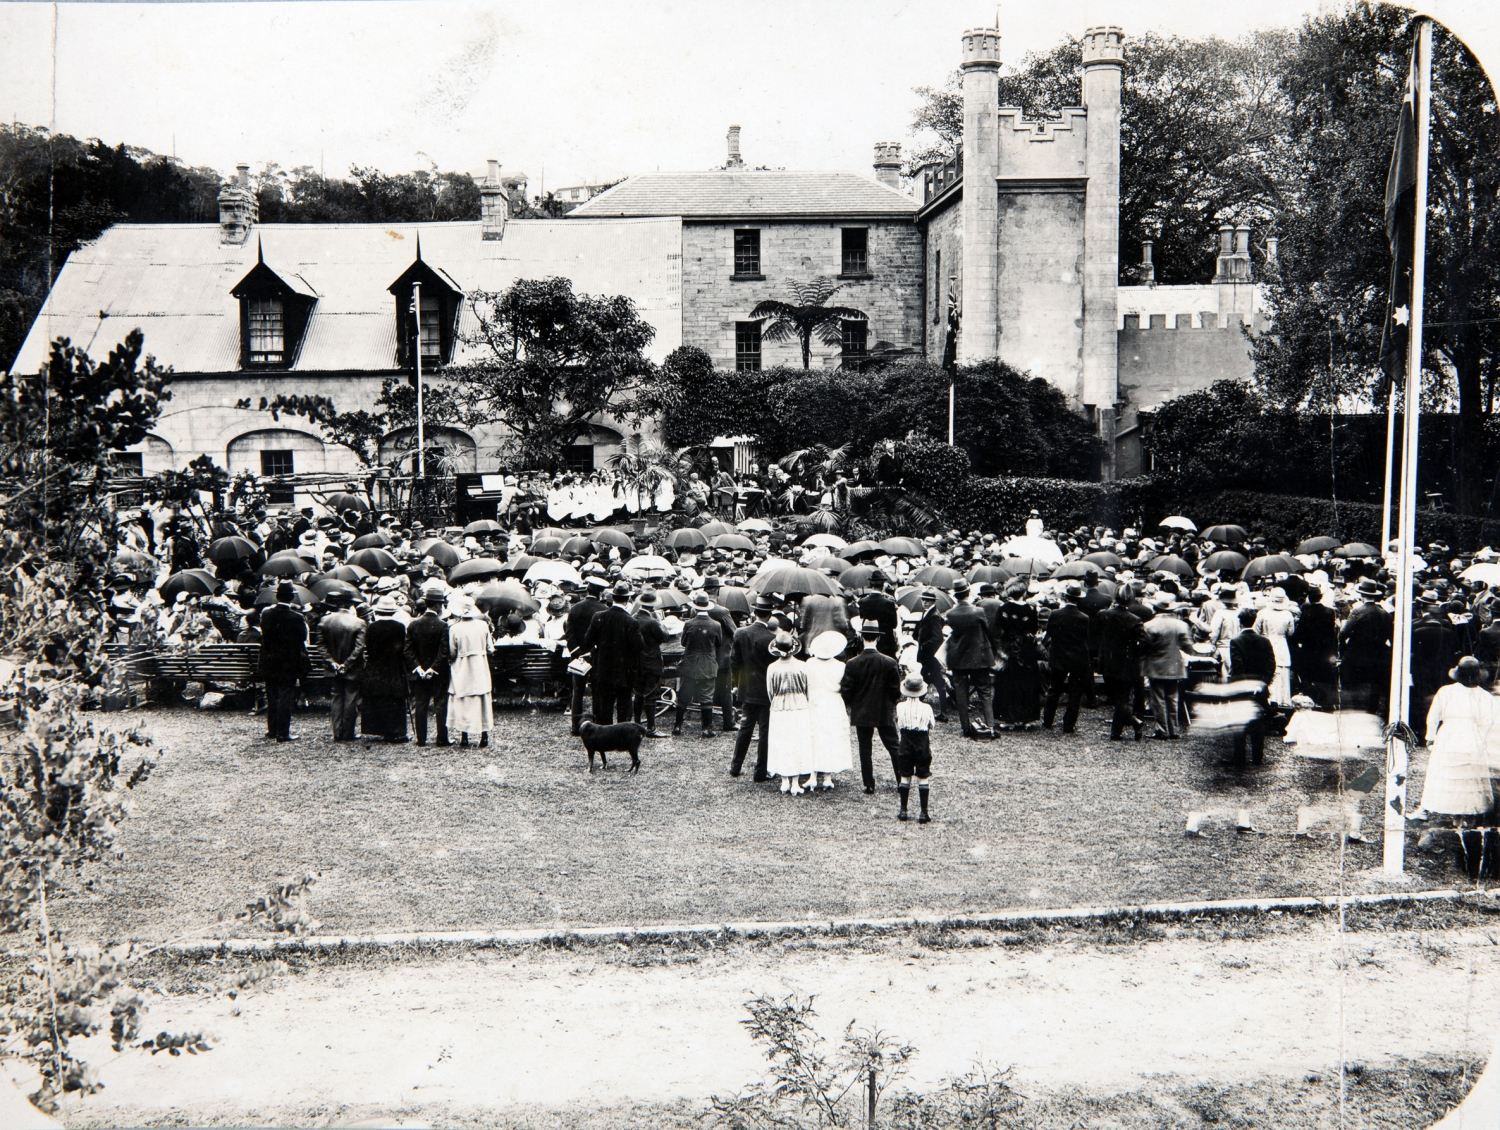 Black and and white photo of crowds on lawn at side of house, with flag pole visible to right.